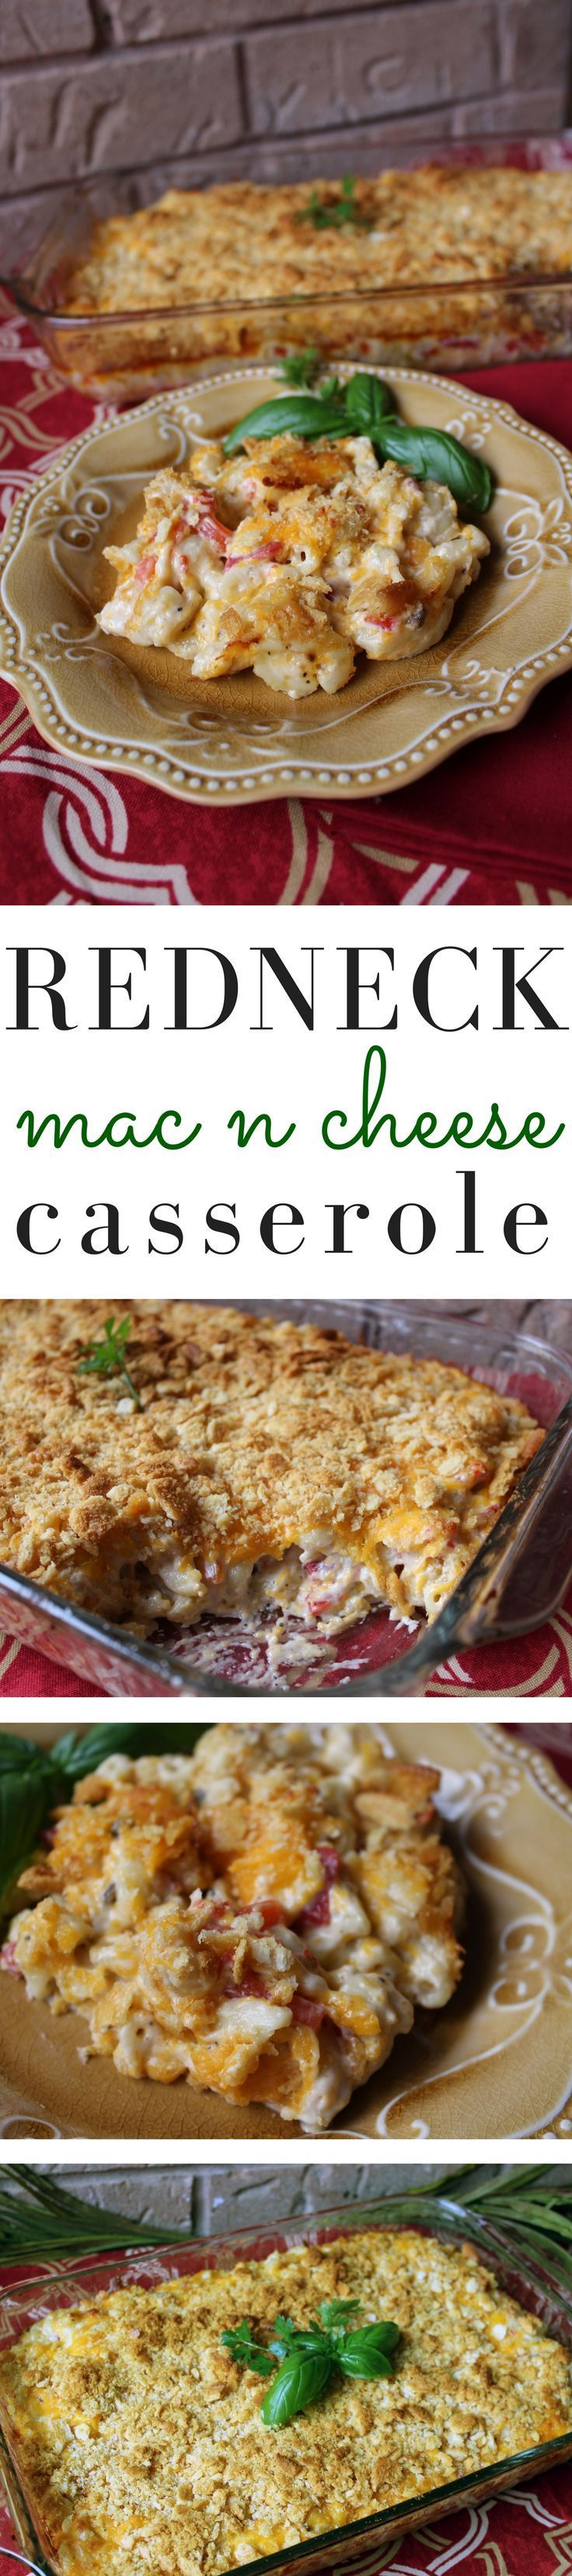 This is not your typical mac and cheese. It's rich and creamy from the cream of mushroom/mayo mixture. Pimentos and onions add tons of flavor. Make sure to add the Ritz crackers with the cheese - it's a delicious topping. #macandcheese #macaroniandcheese #casserole #comfortfood #easydinner